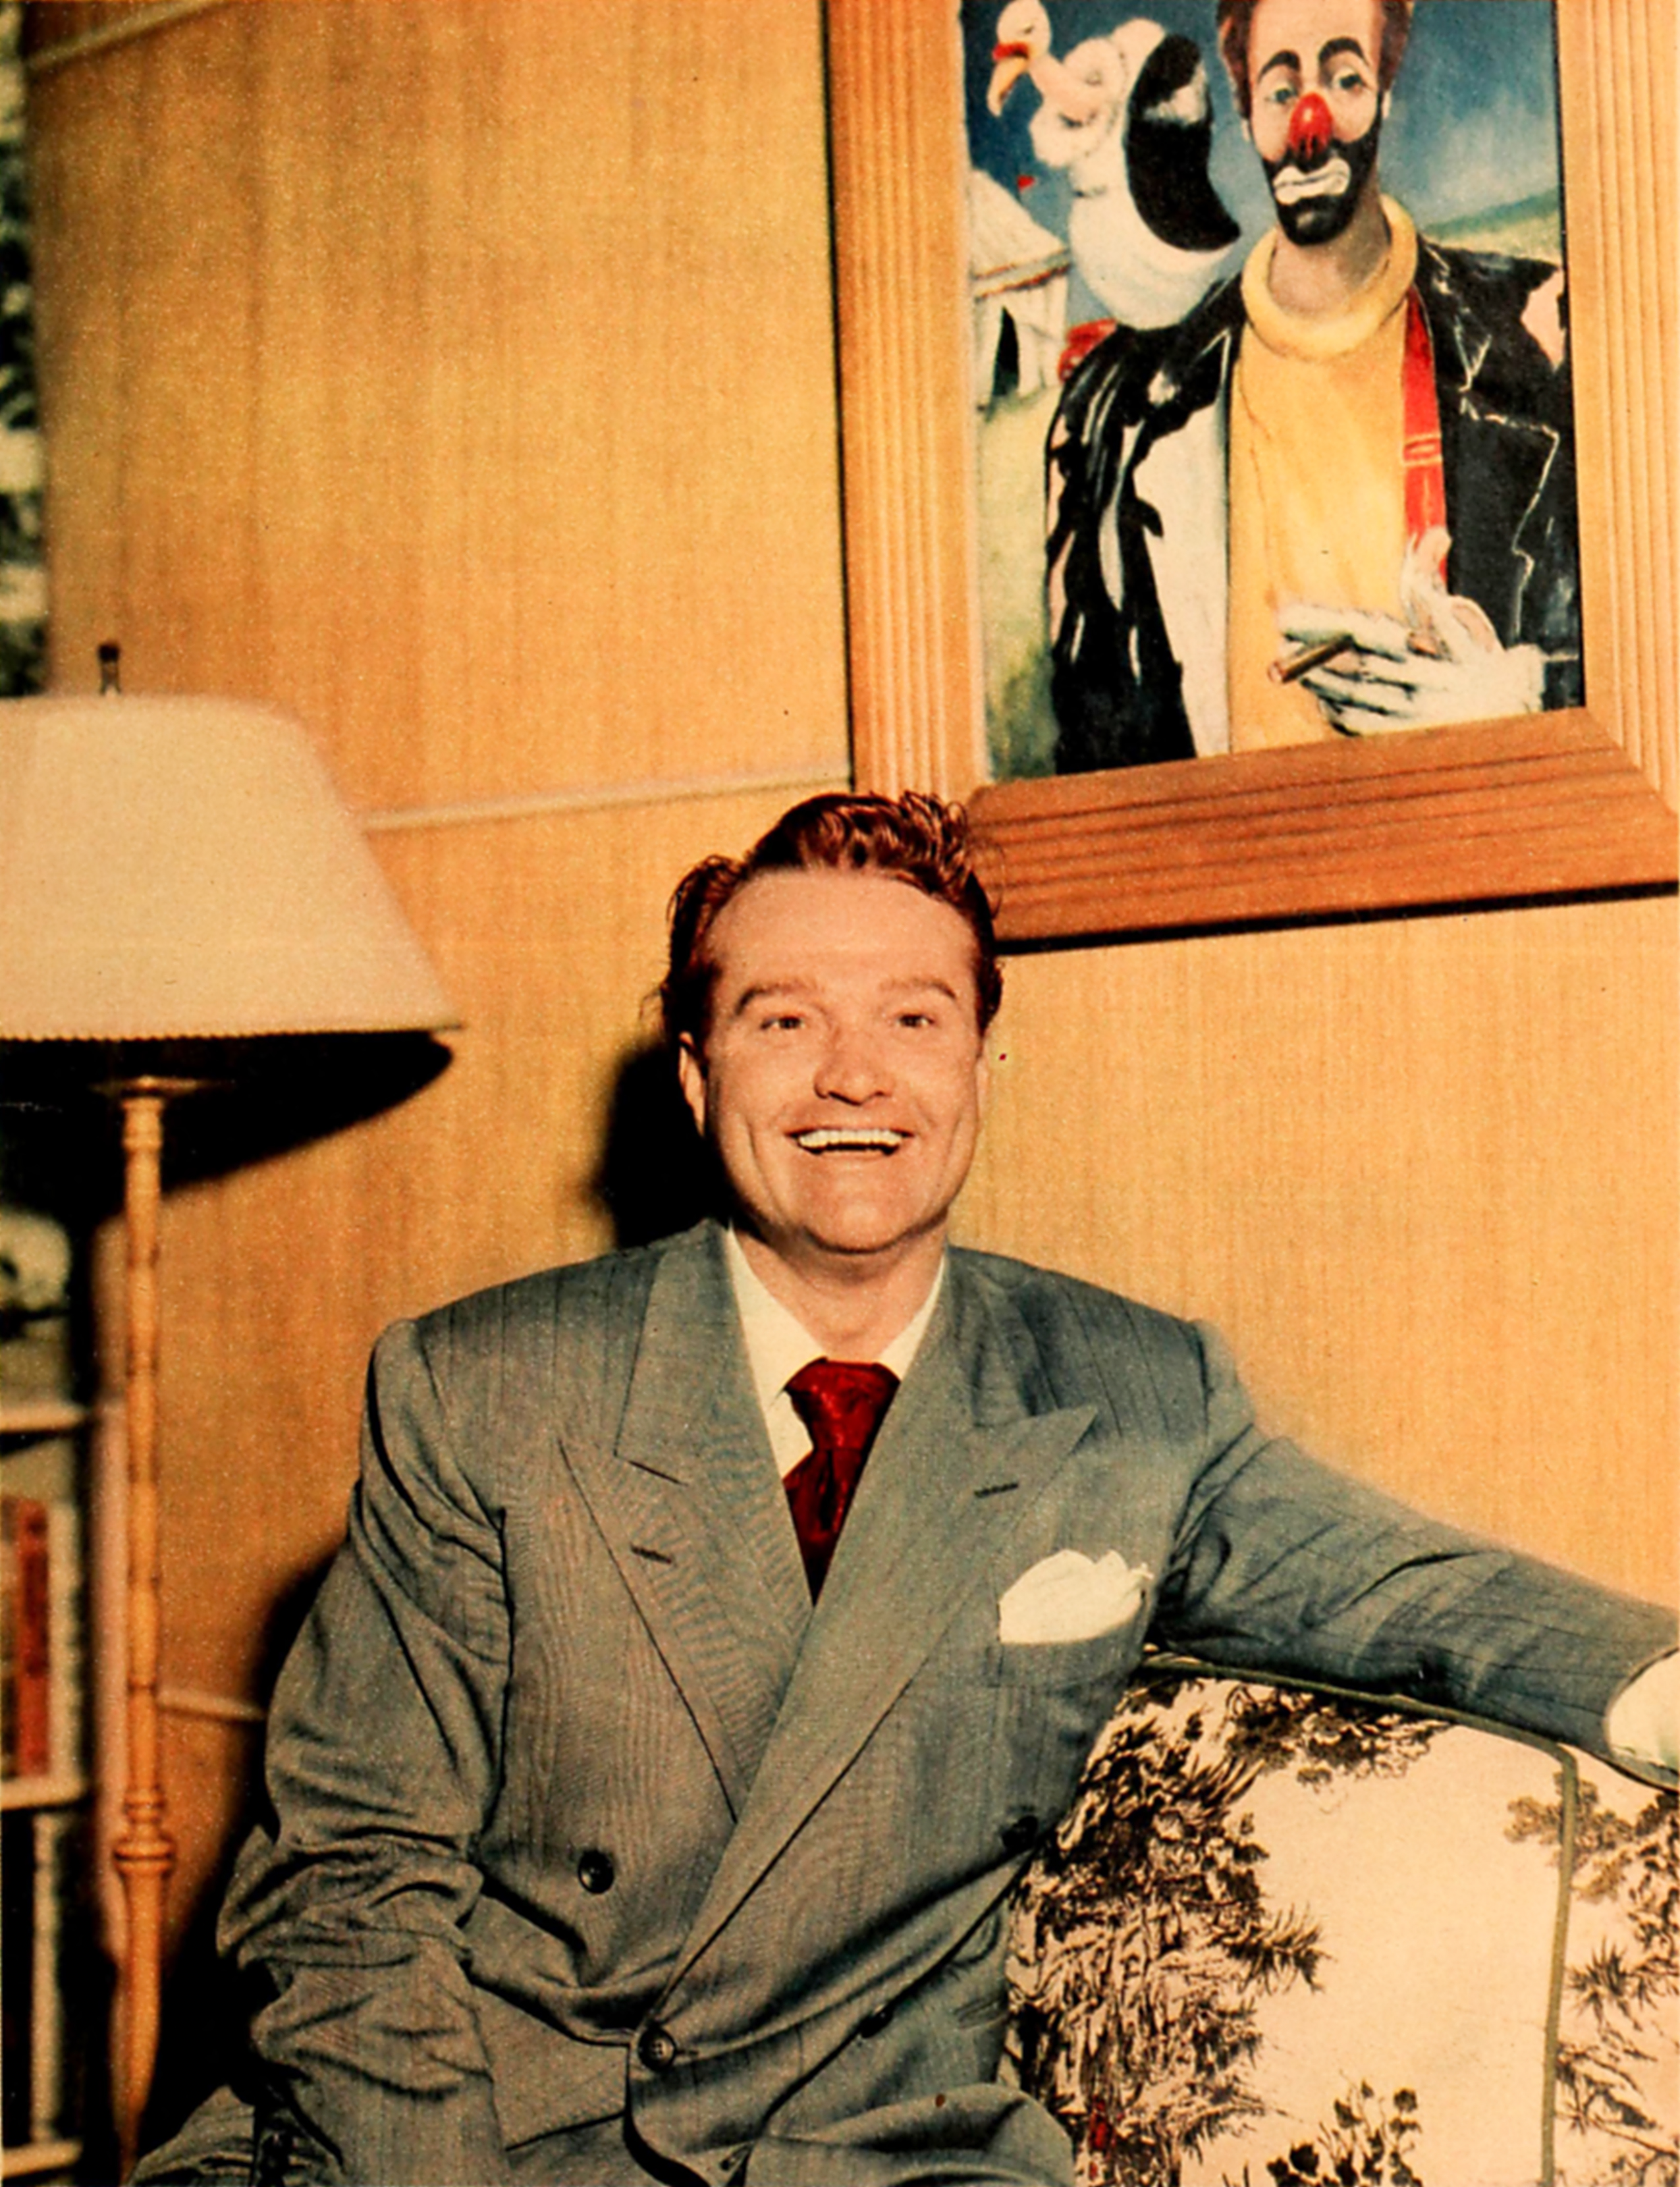 Red Skelton at home with his artwork, 1948